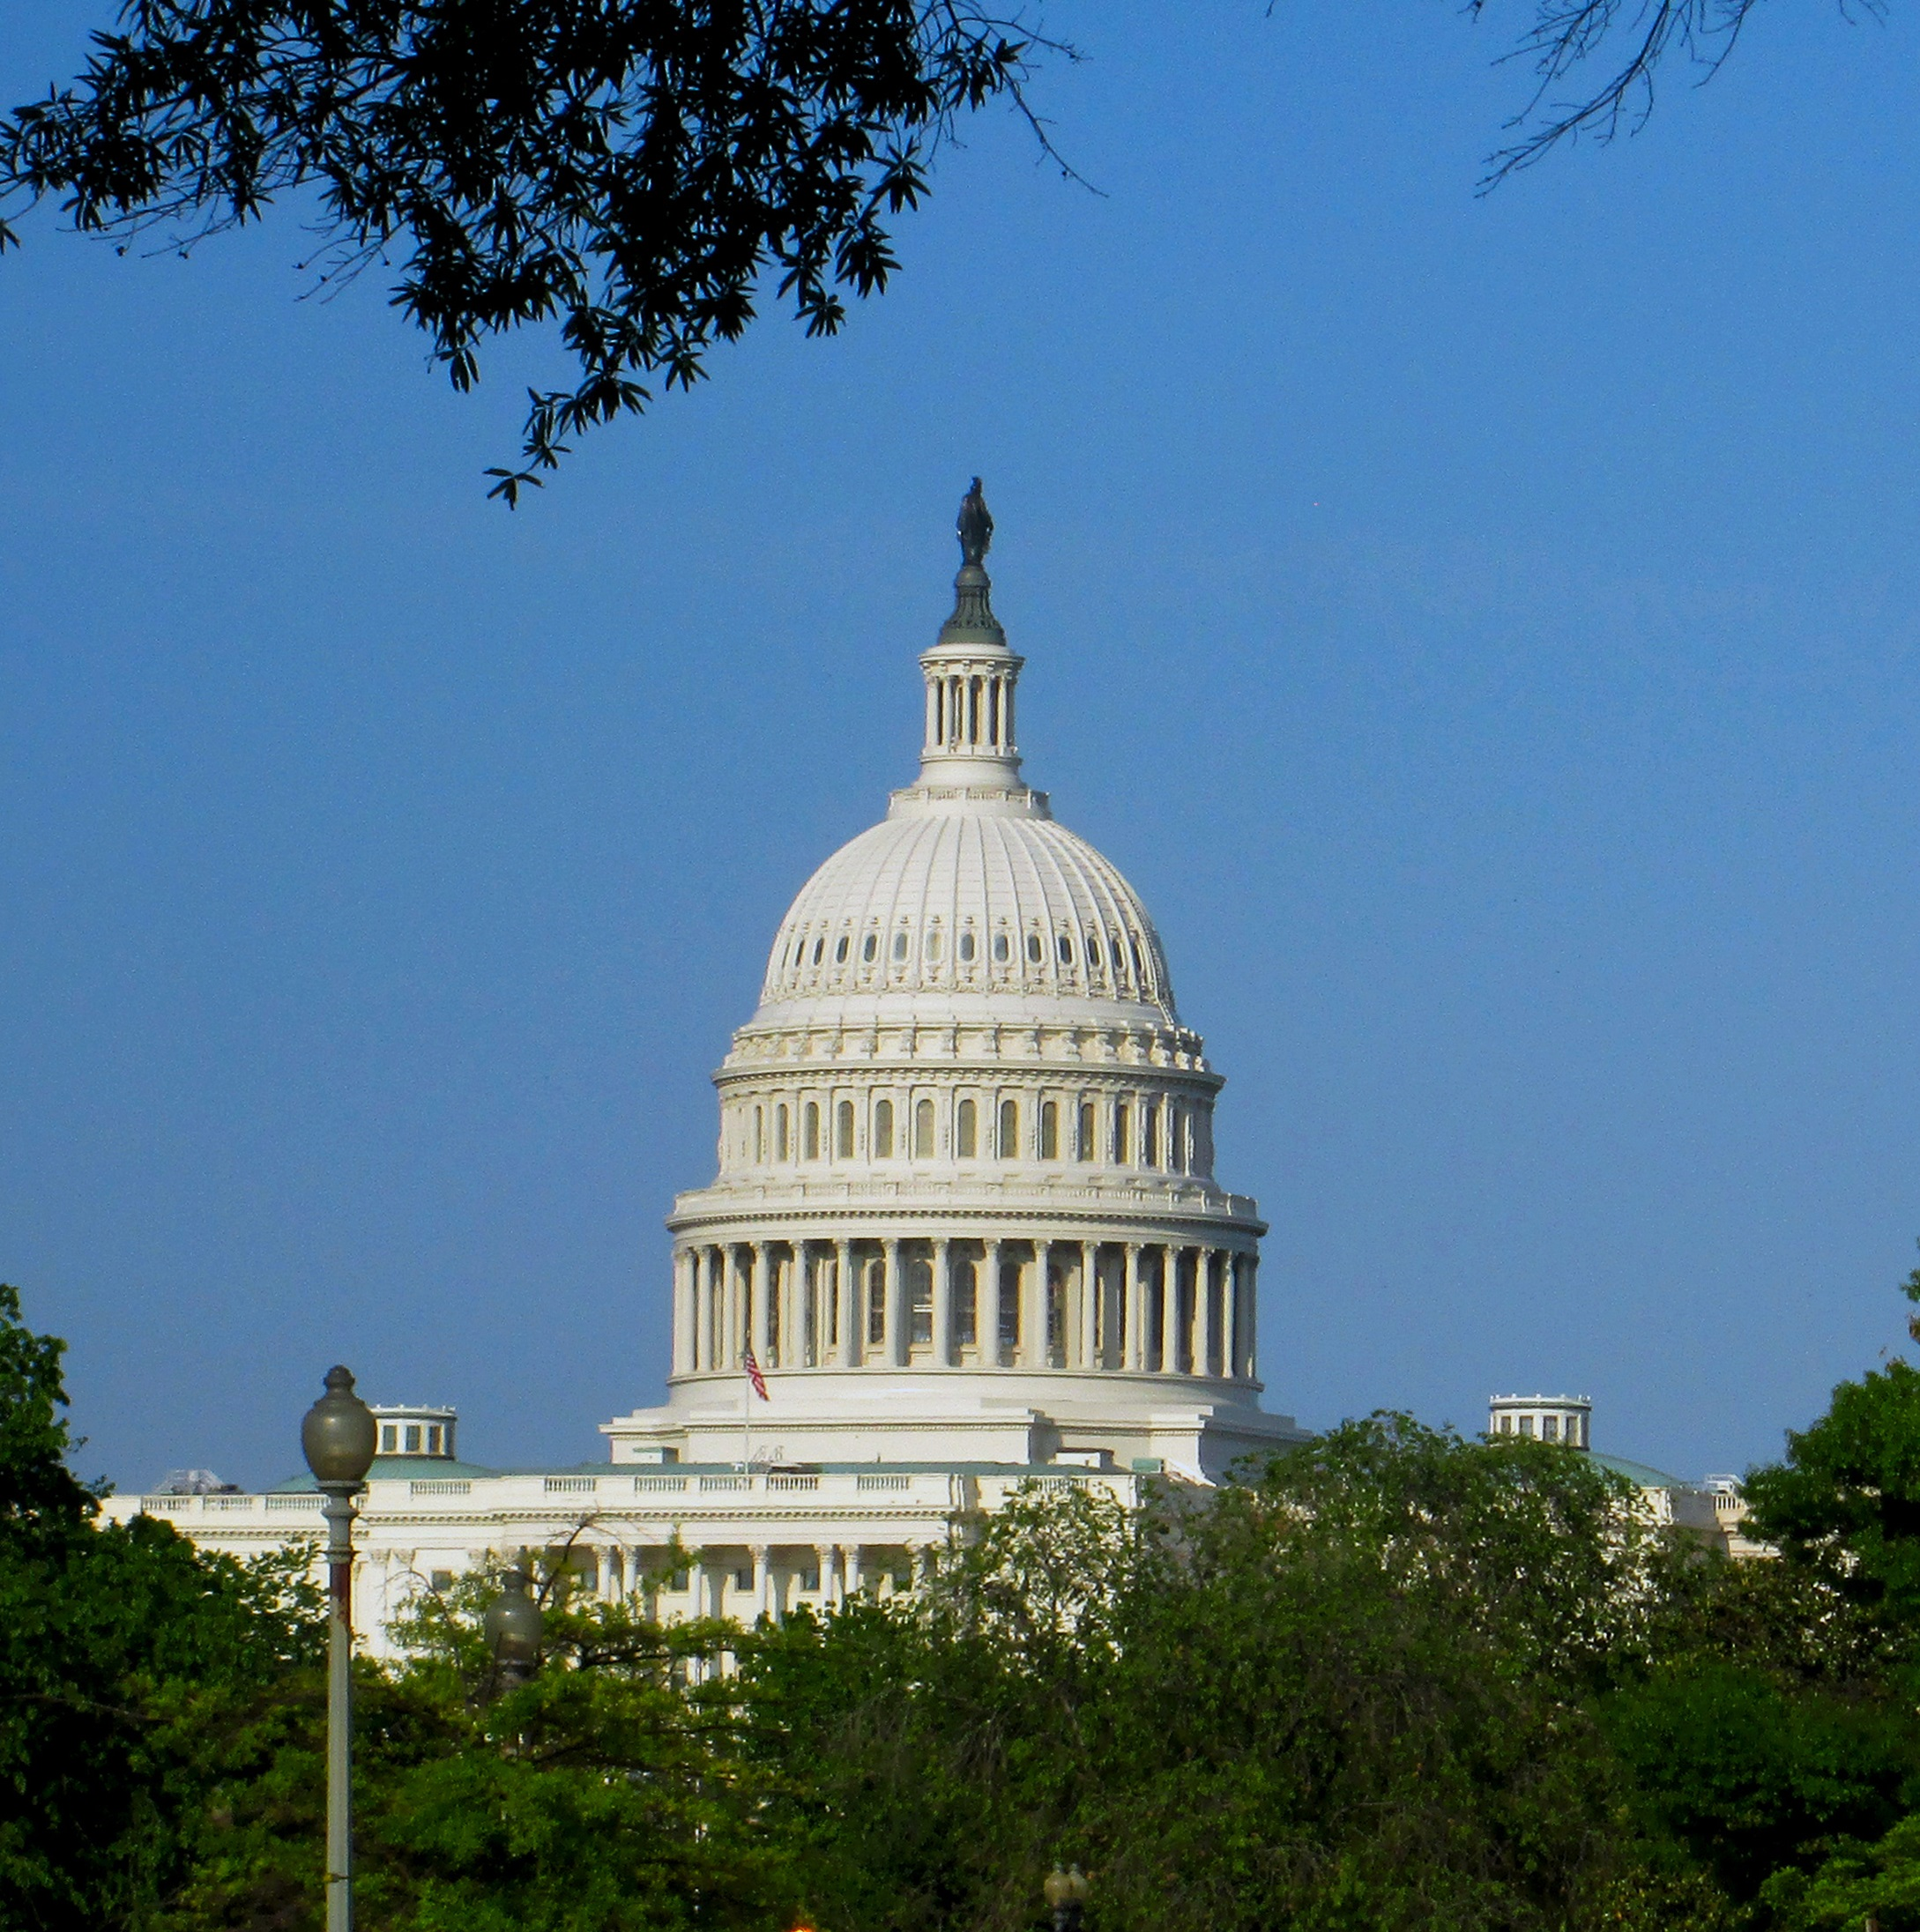 Attend conferences in and near Washington, D.C., a city of endless attractions.